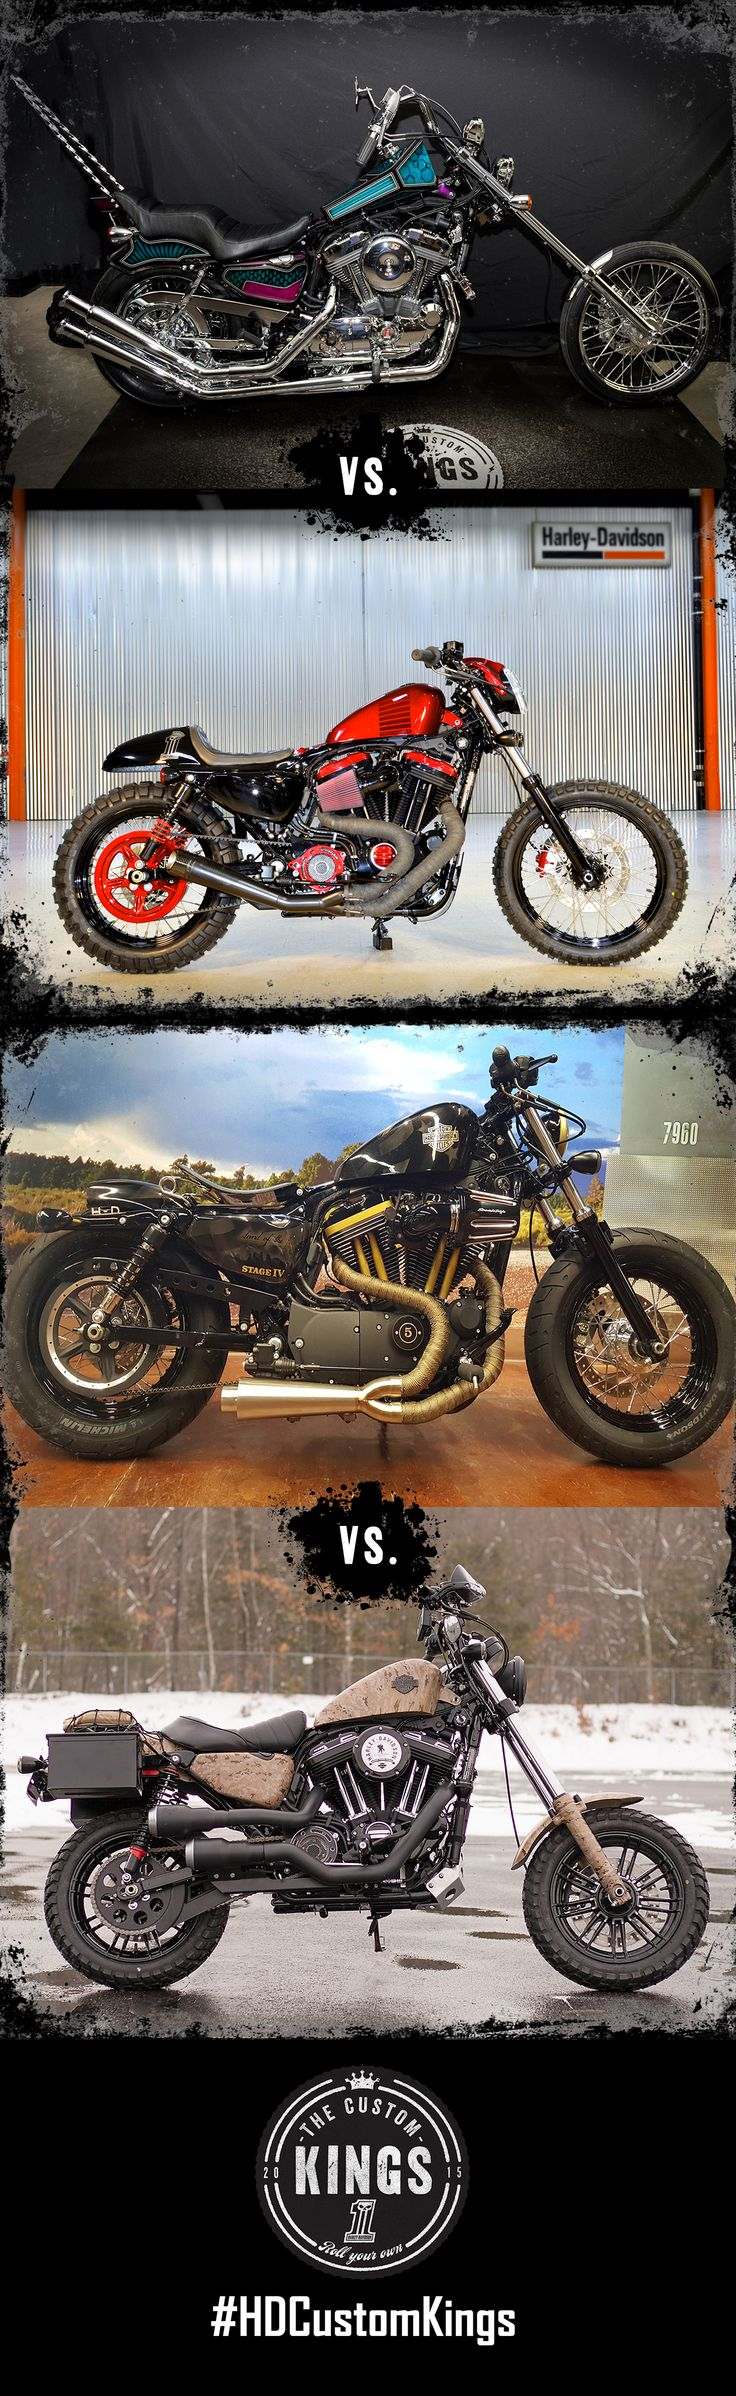 Round two of the #HDCustomKings Sportster competition is underway. Who will win the crown? Vote daily! | Harley-Davidson #HDCustomKings At-Large Region